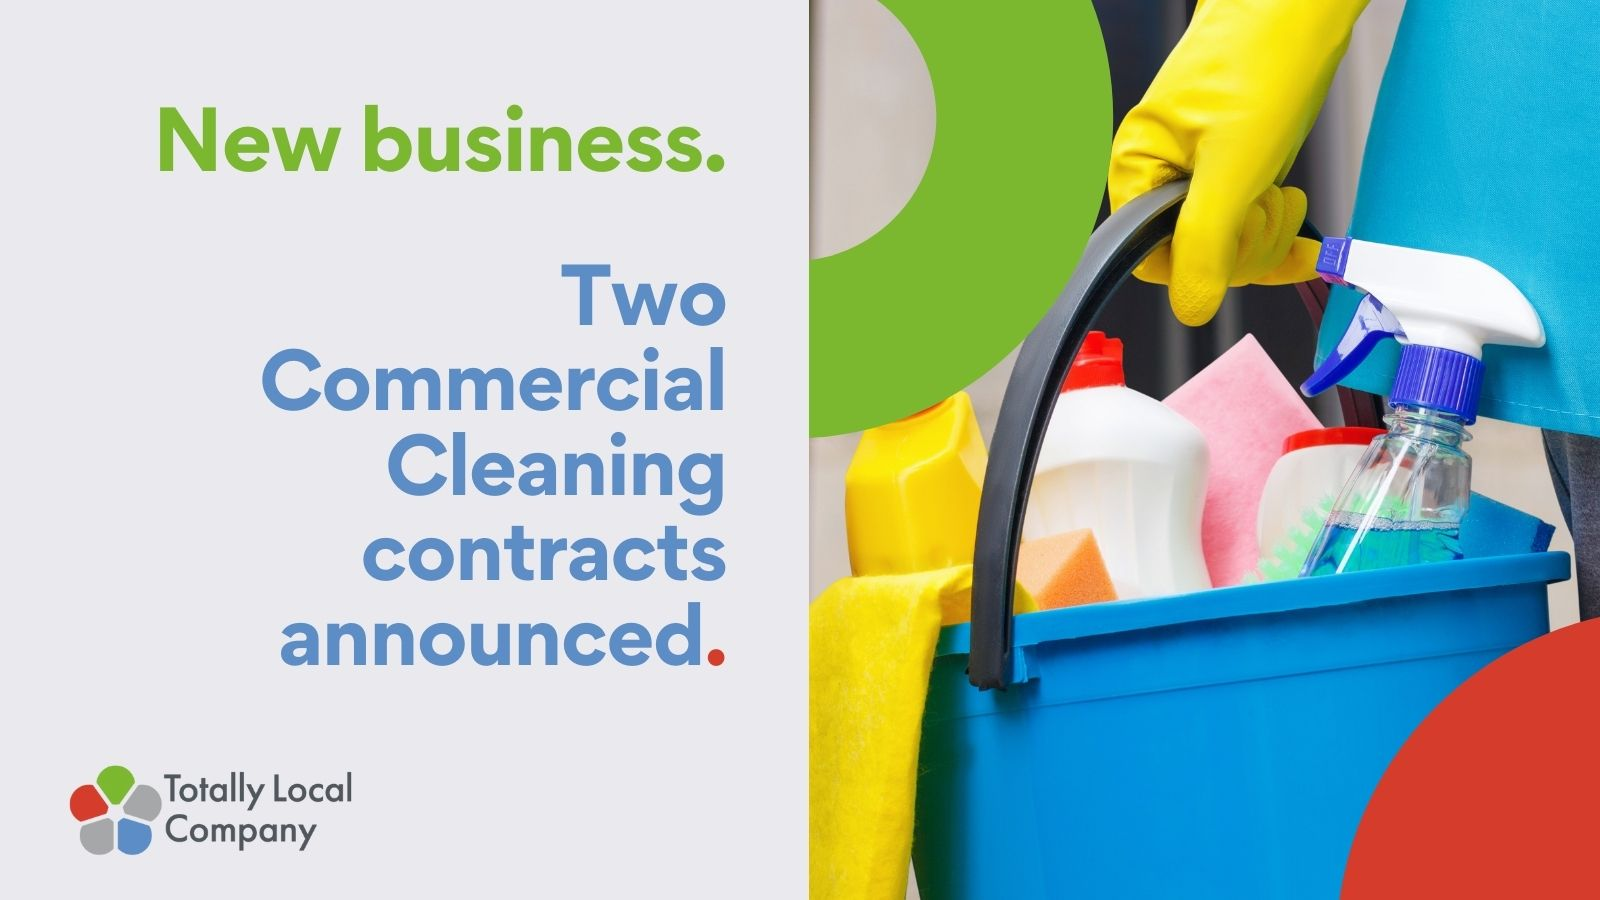 image of personal holding a bucket with cleaning products in it, along with wording confirmed the new business win